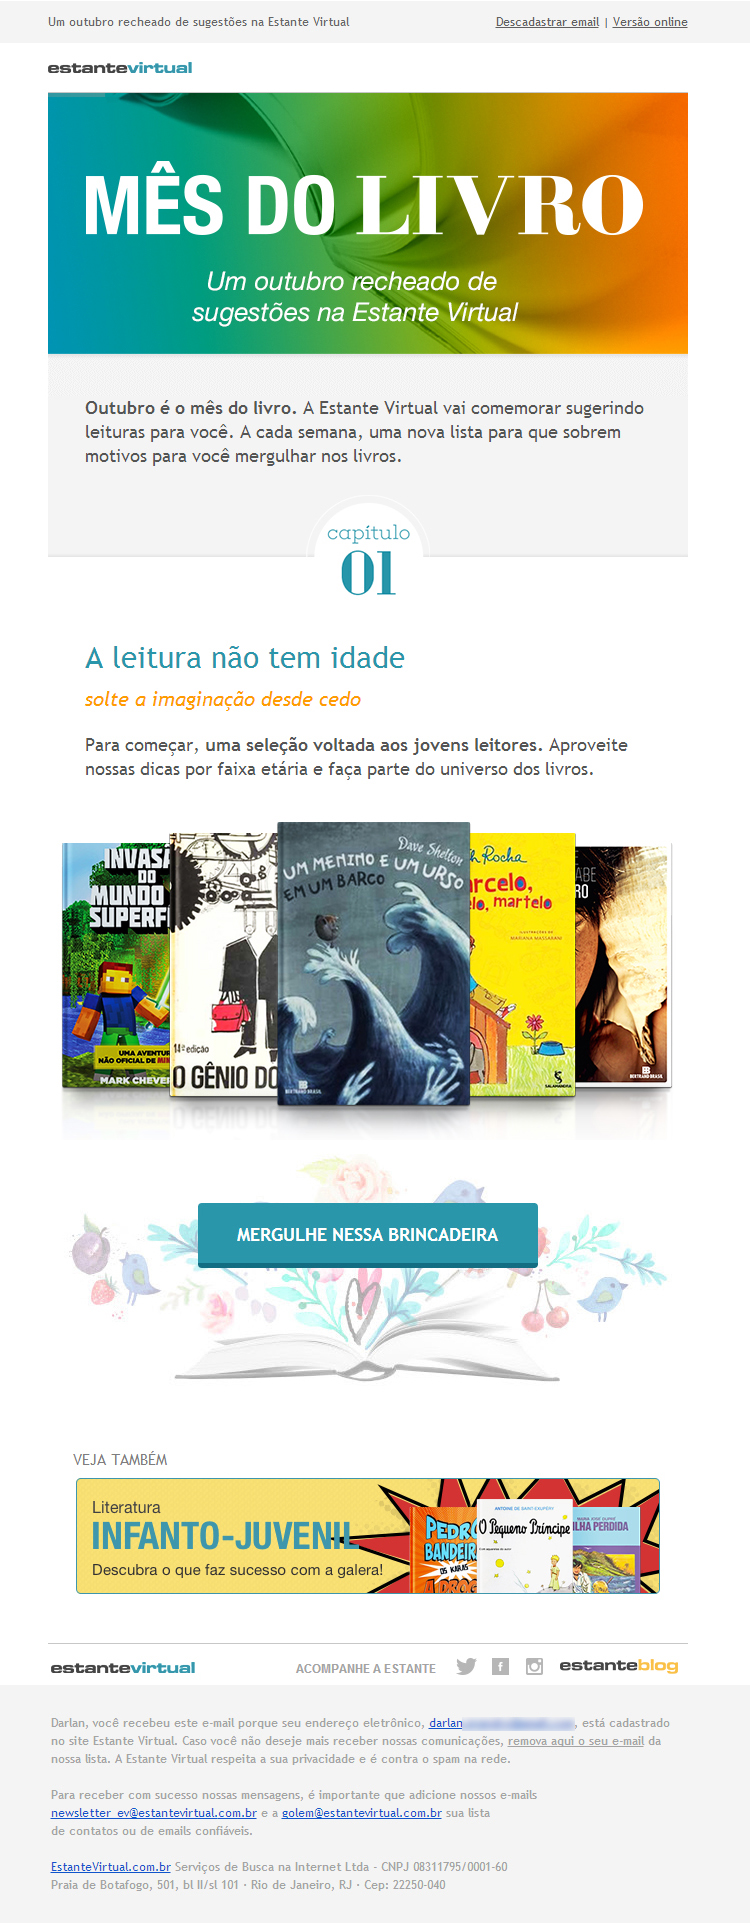 Email Marketing - Estante Virtual - Mês do Livro